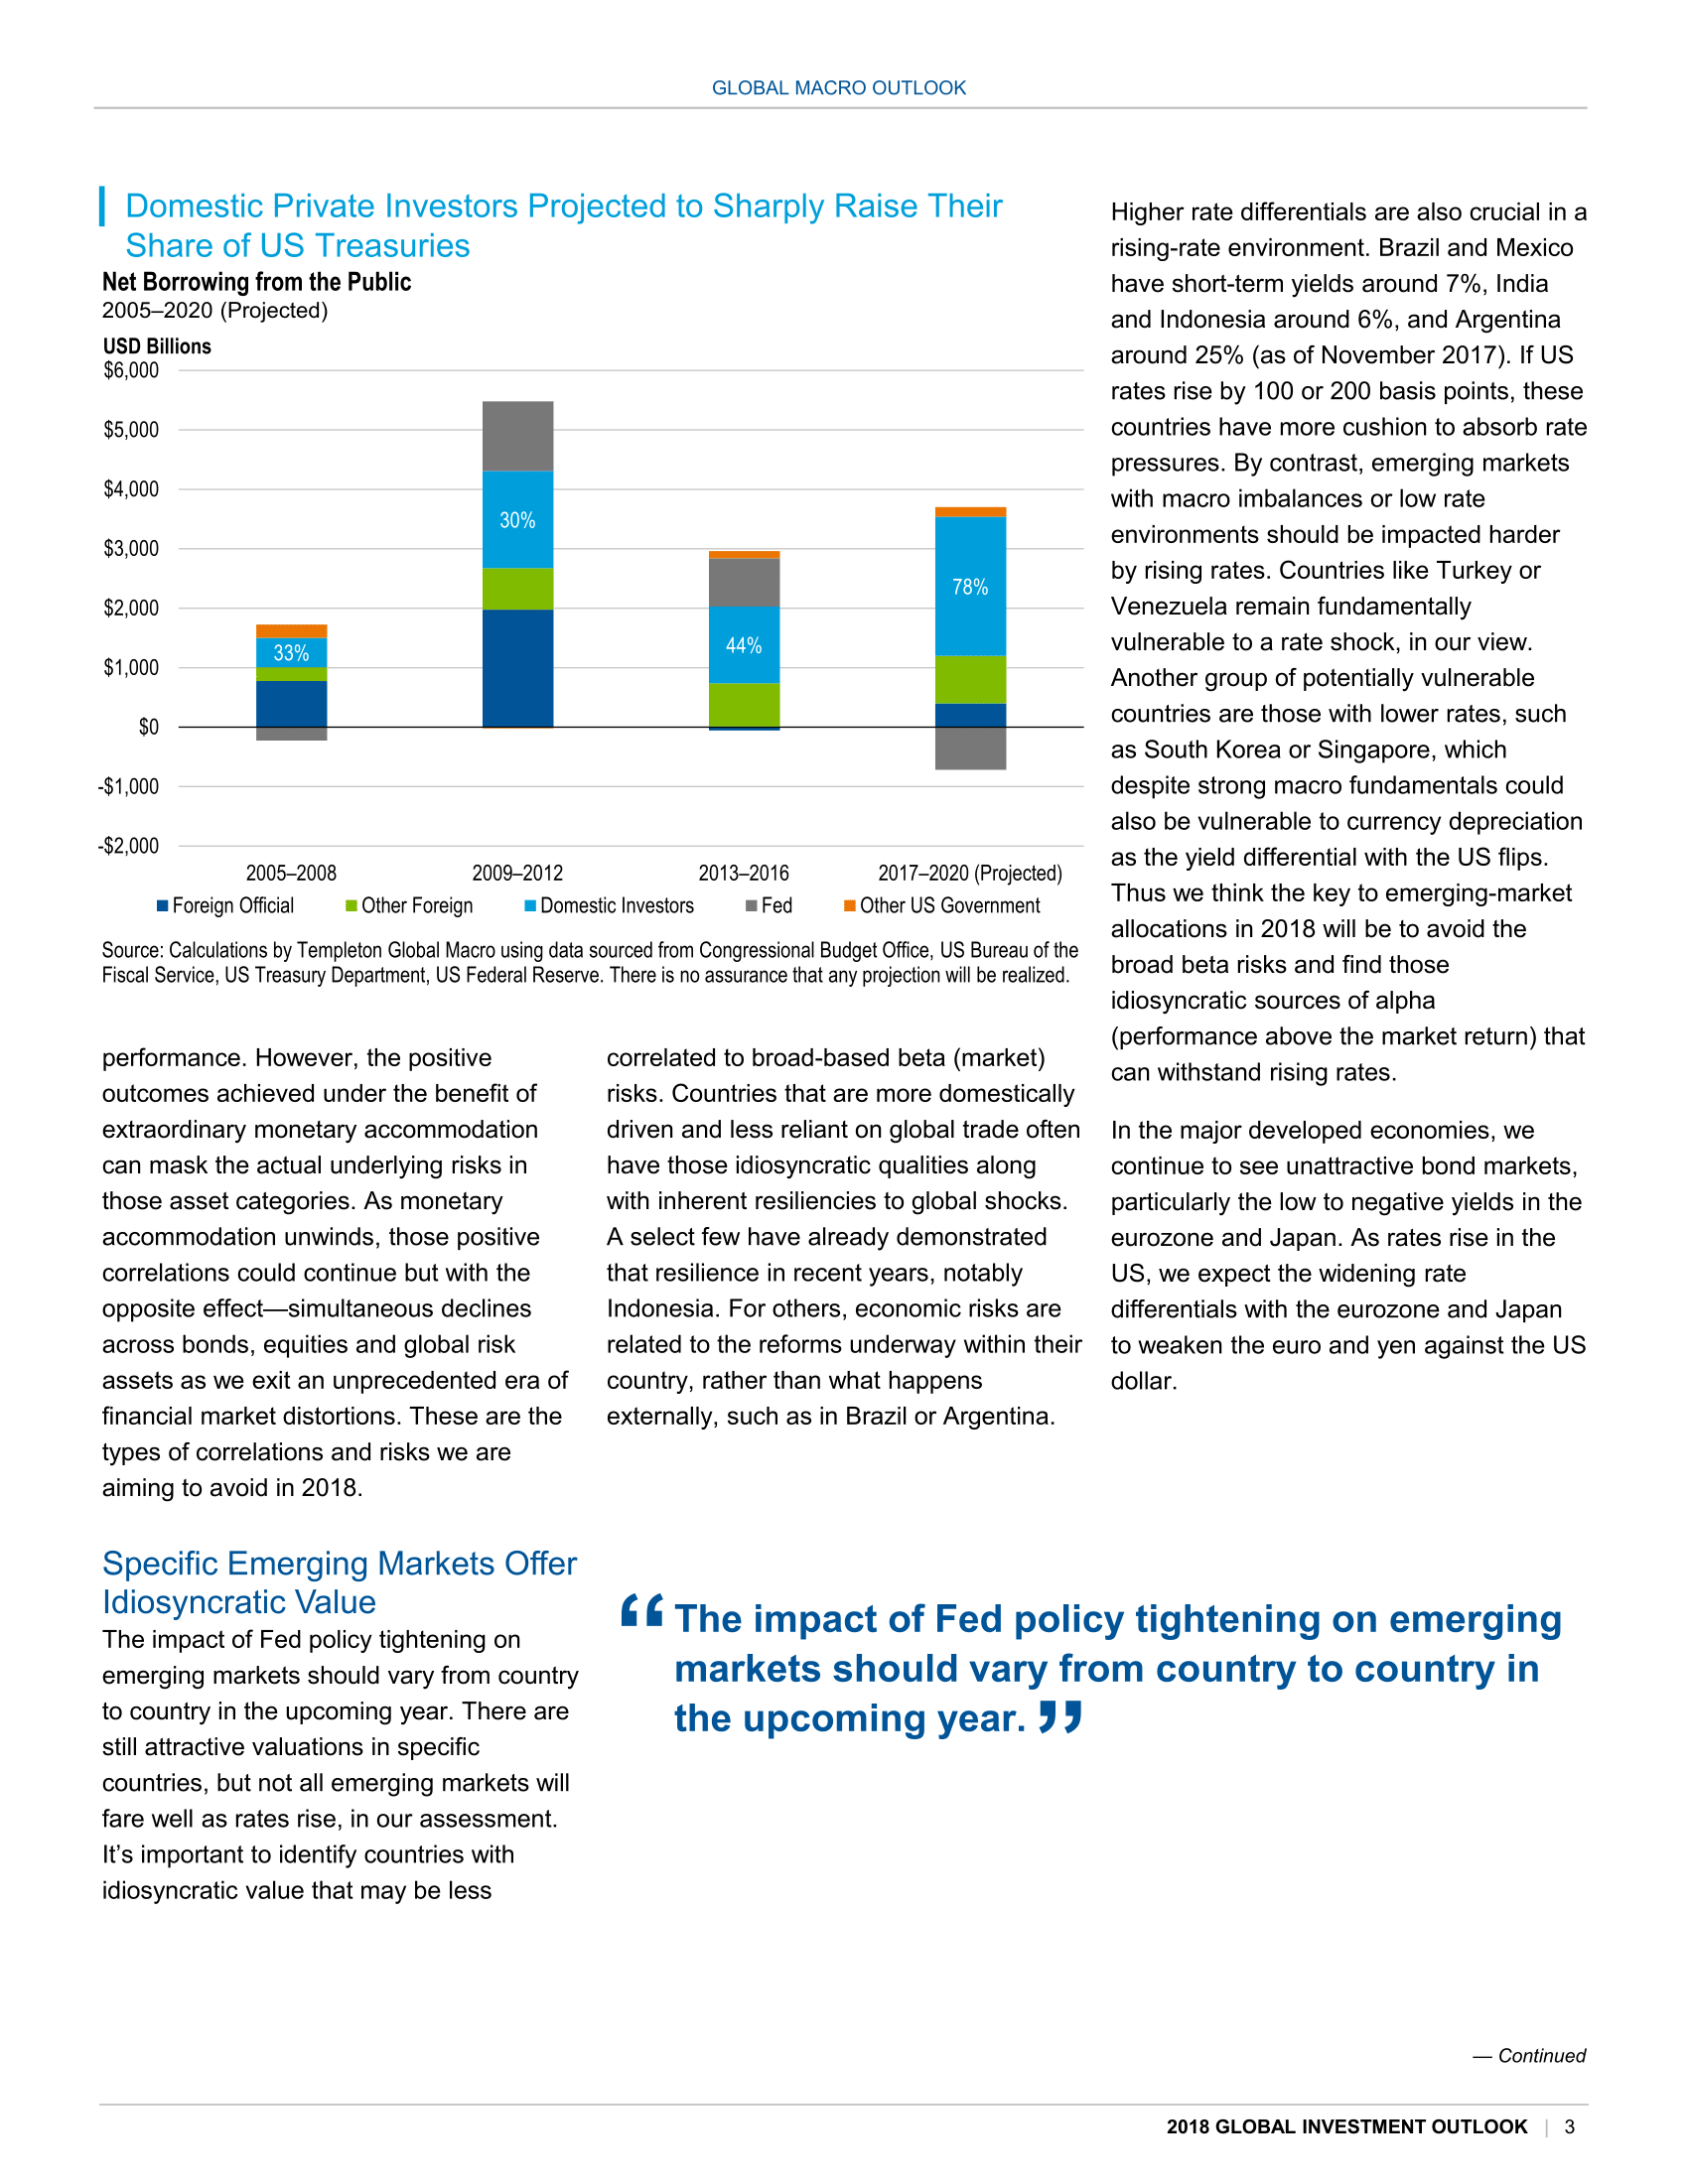 Franklin Templeton 2018 Outlook-05.png